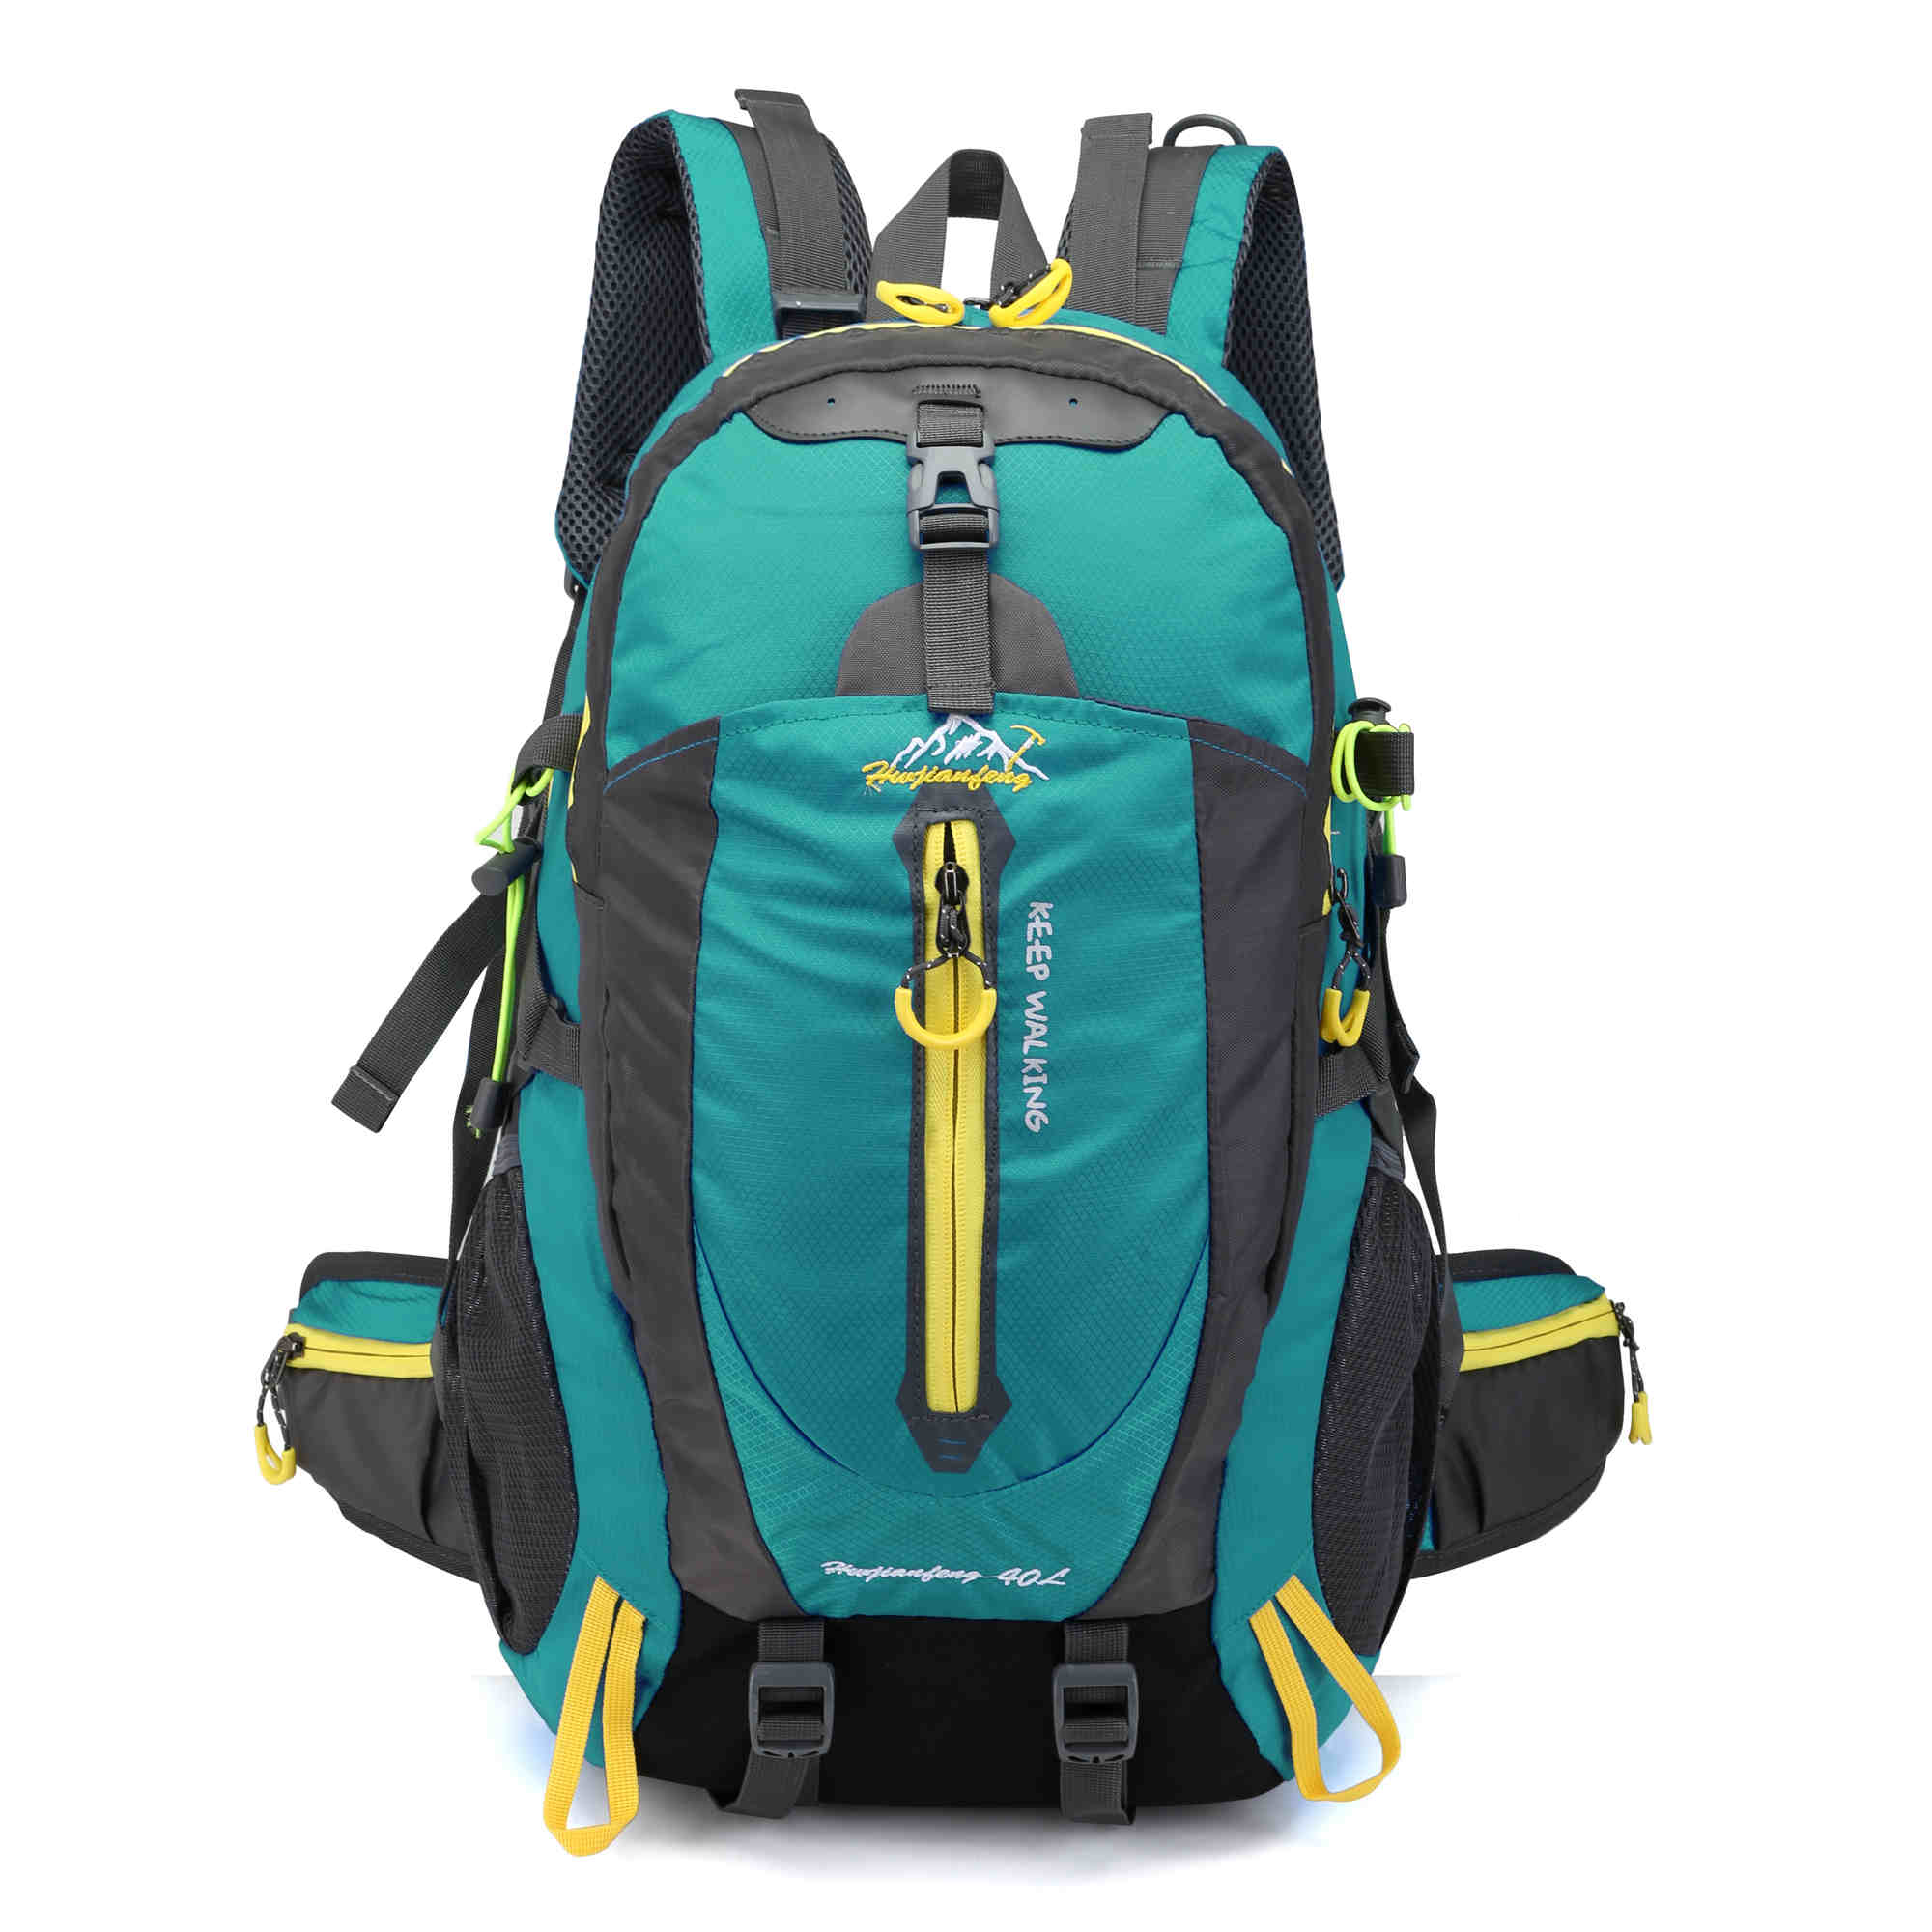 40L Waterproof Climbing Bag Travel Backpack Bike Bicycle Bag Camping Hike Laptop Daypack Rucksack Outdoor Men Women Sport Bags